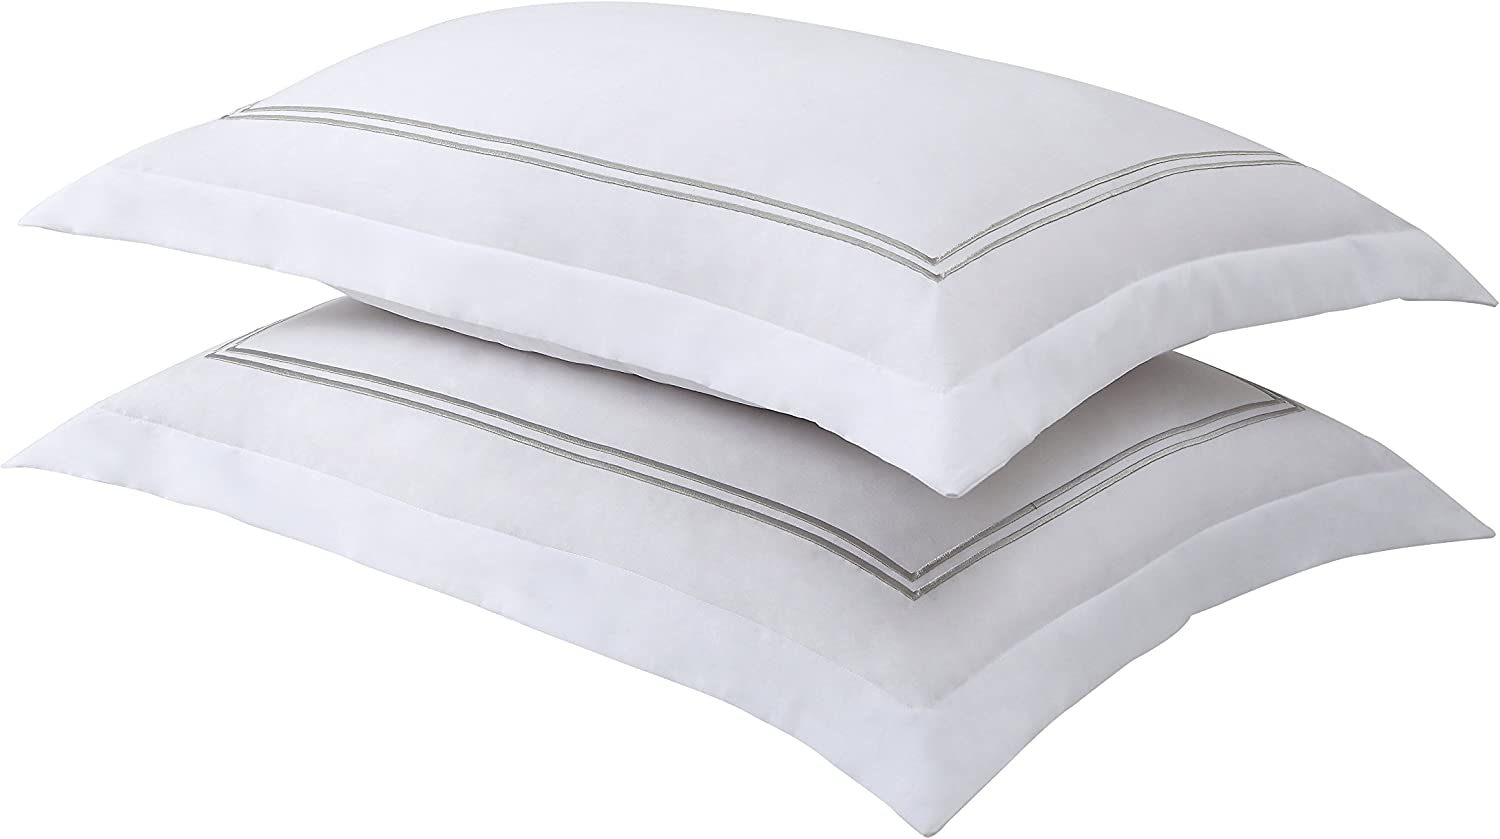 Bed Maker's Levinsohn Luxury Hotel Tailored Pillow Sham Pair, White with Silver Baratta Stitched Hem (2 Pack) Standard